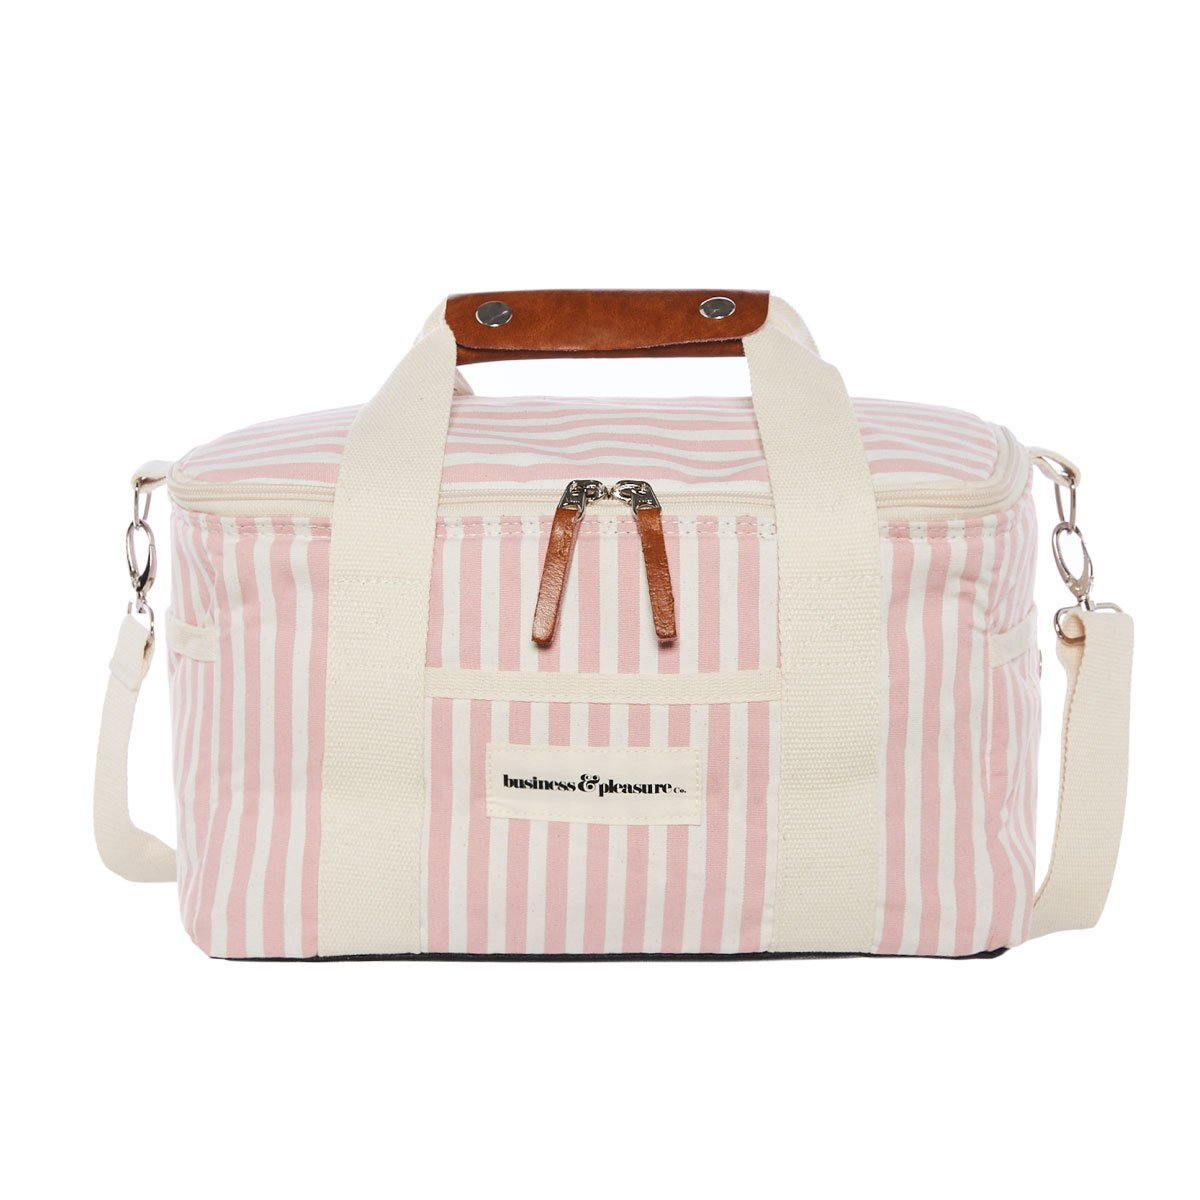 The Premium Cooler Bag - Lauren's Pink Stripe - Business & Pleasure Co